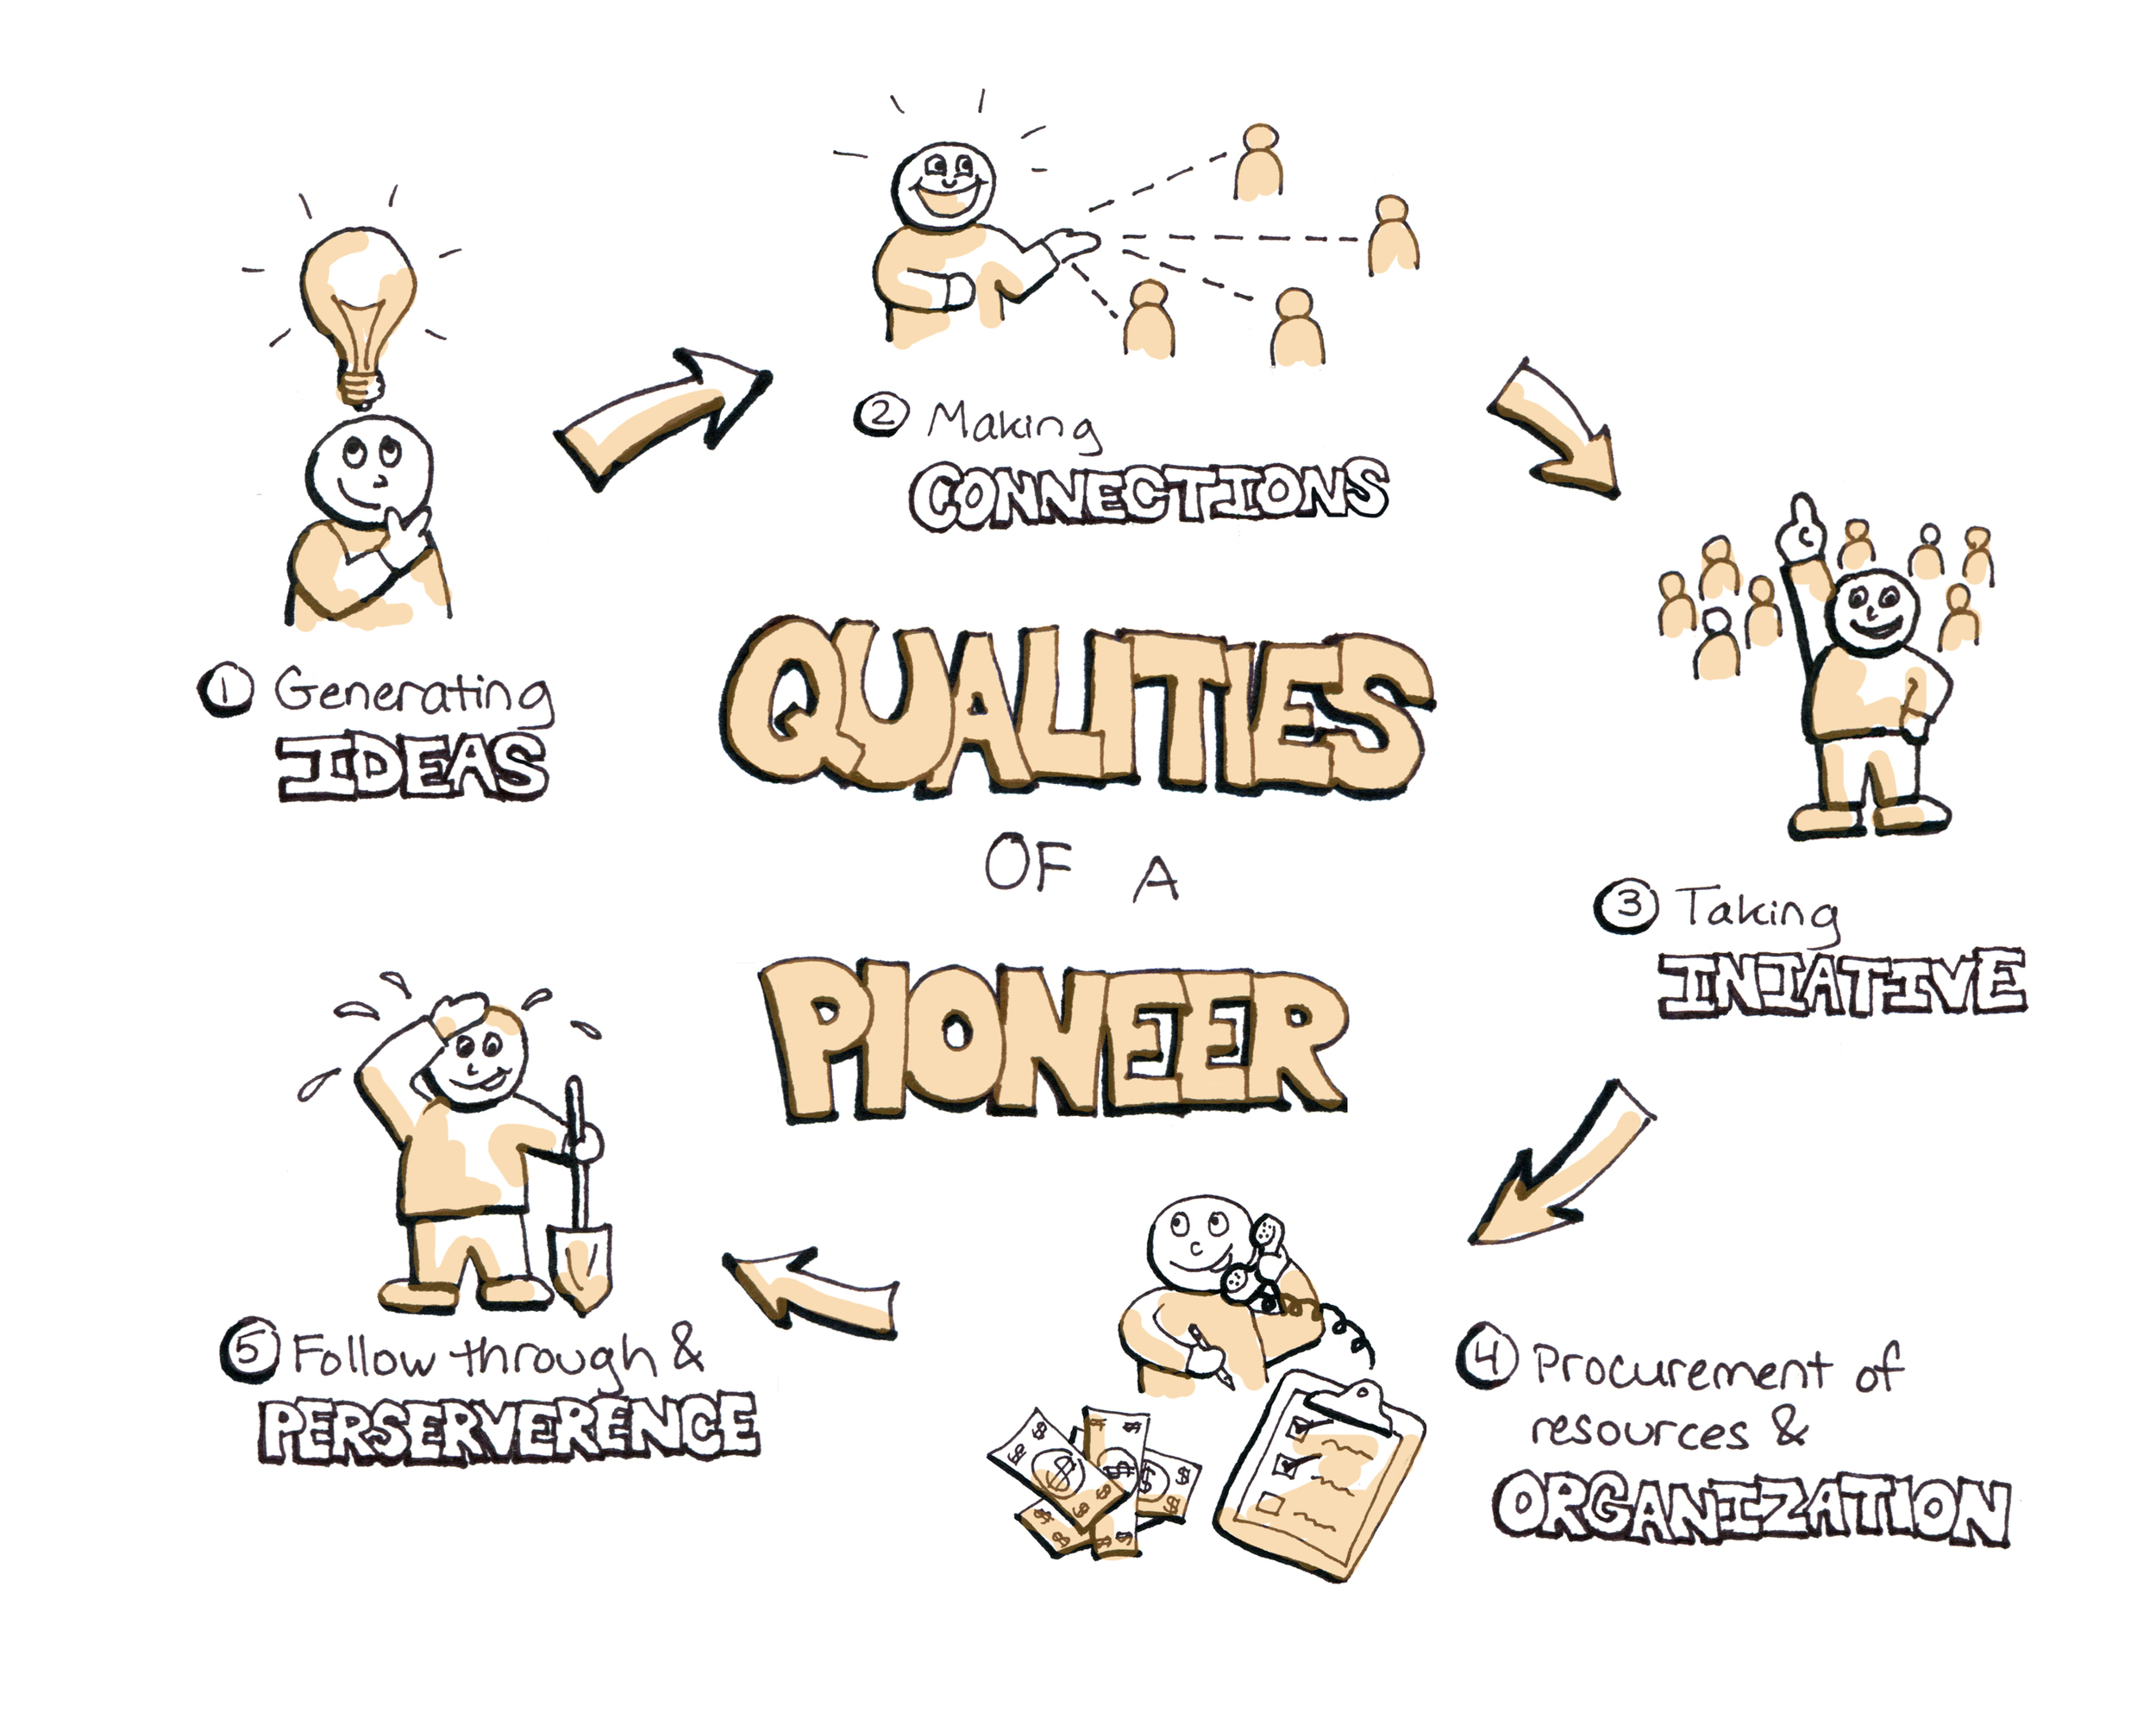 Diagram of pioneers and their key qualities